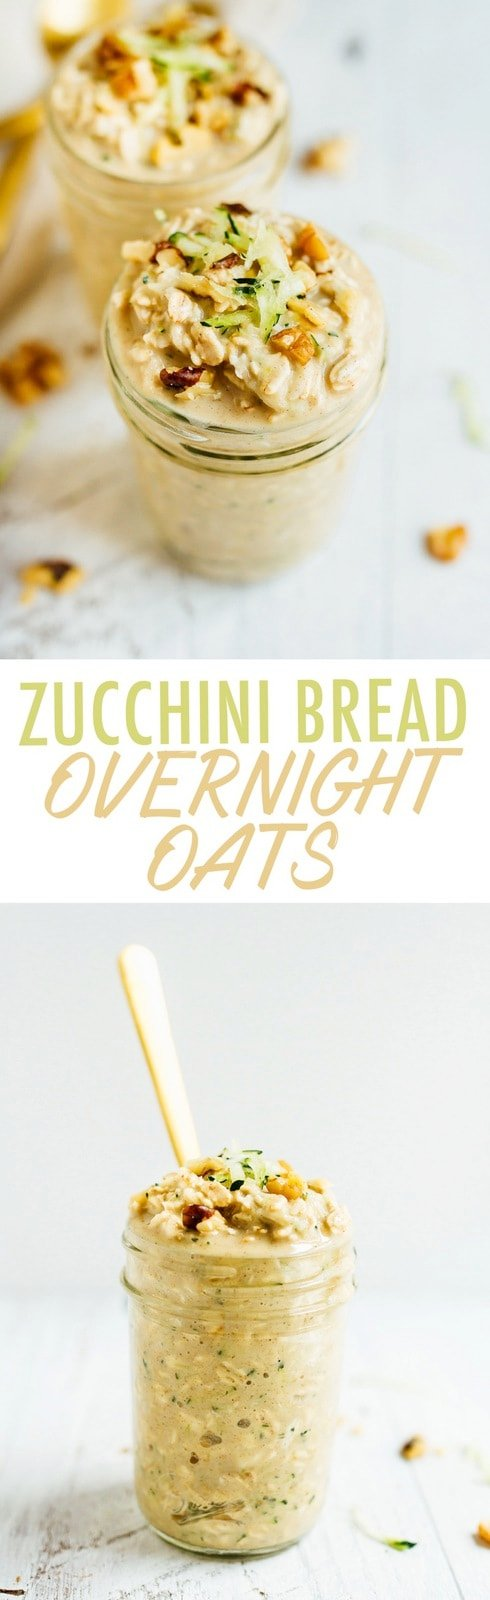 Zucchini bread overnight oats make for an easy and healthy portable breakfast. Made with oats, protein powder, grated zucchini and walnuts, these overnight oats are vegan and gluten-free.